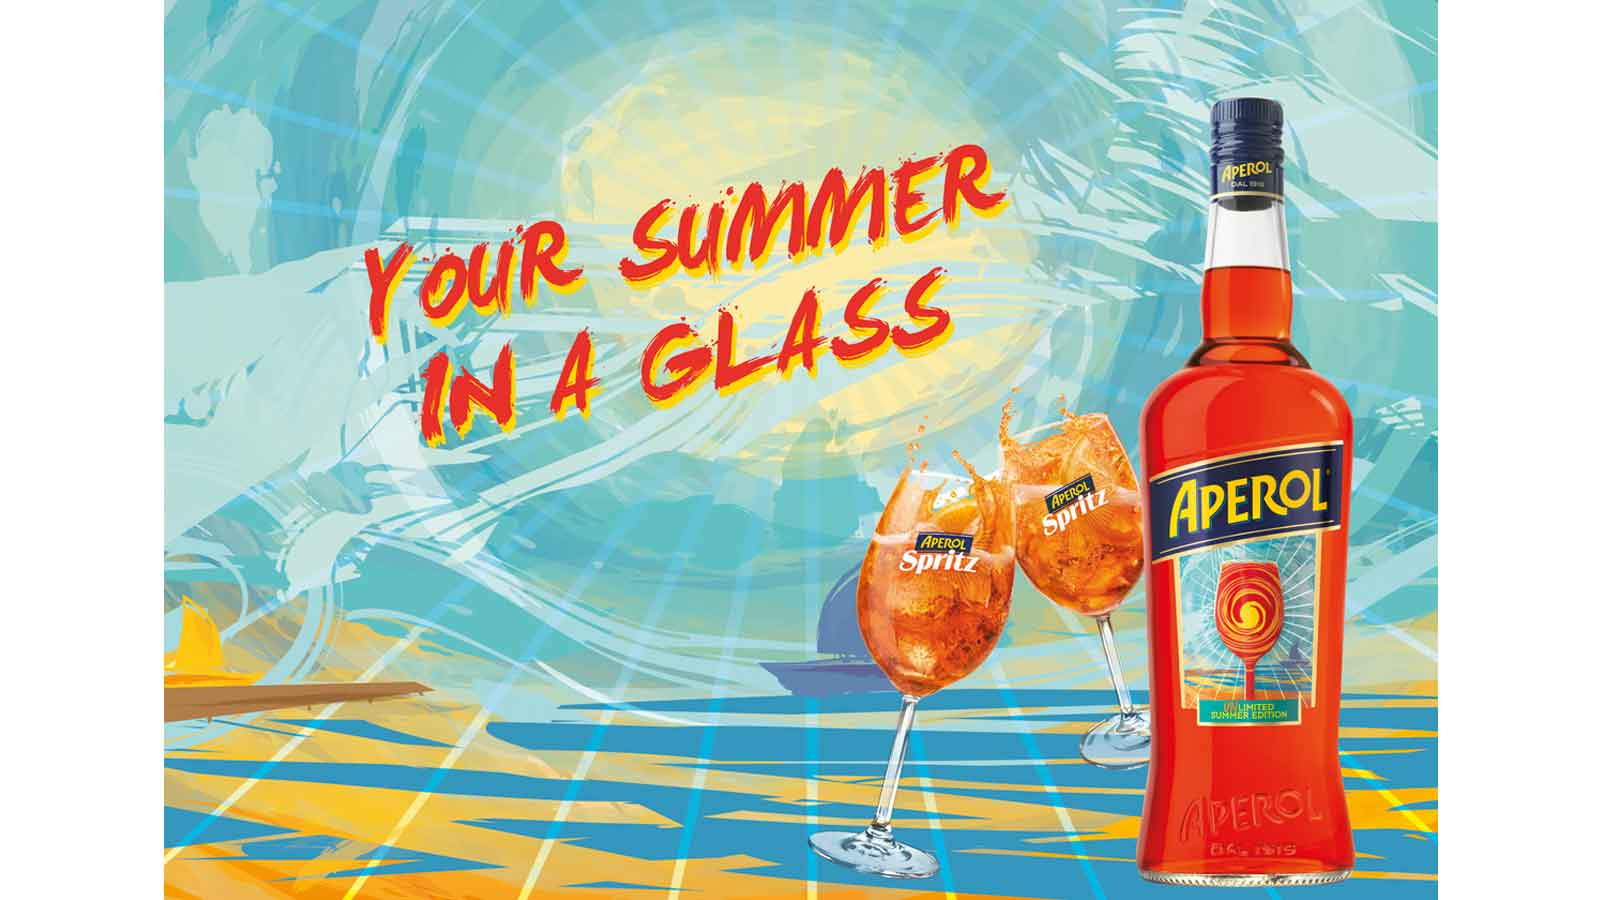 A sip of summer: Aperol launches new unlimited summer edition